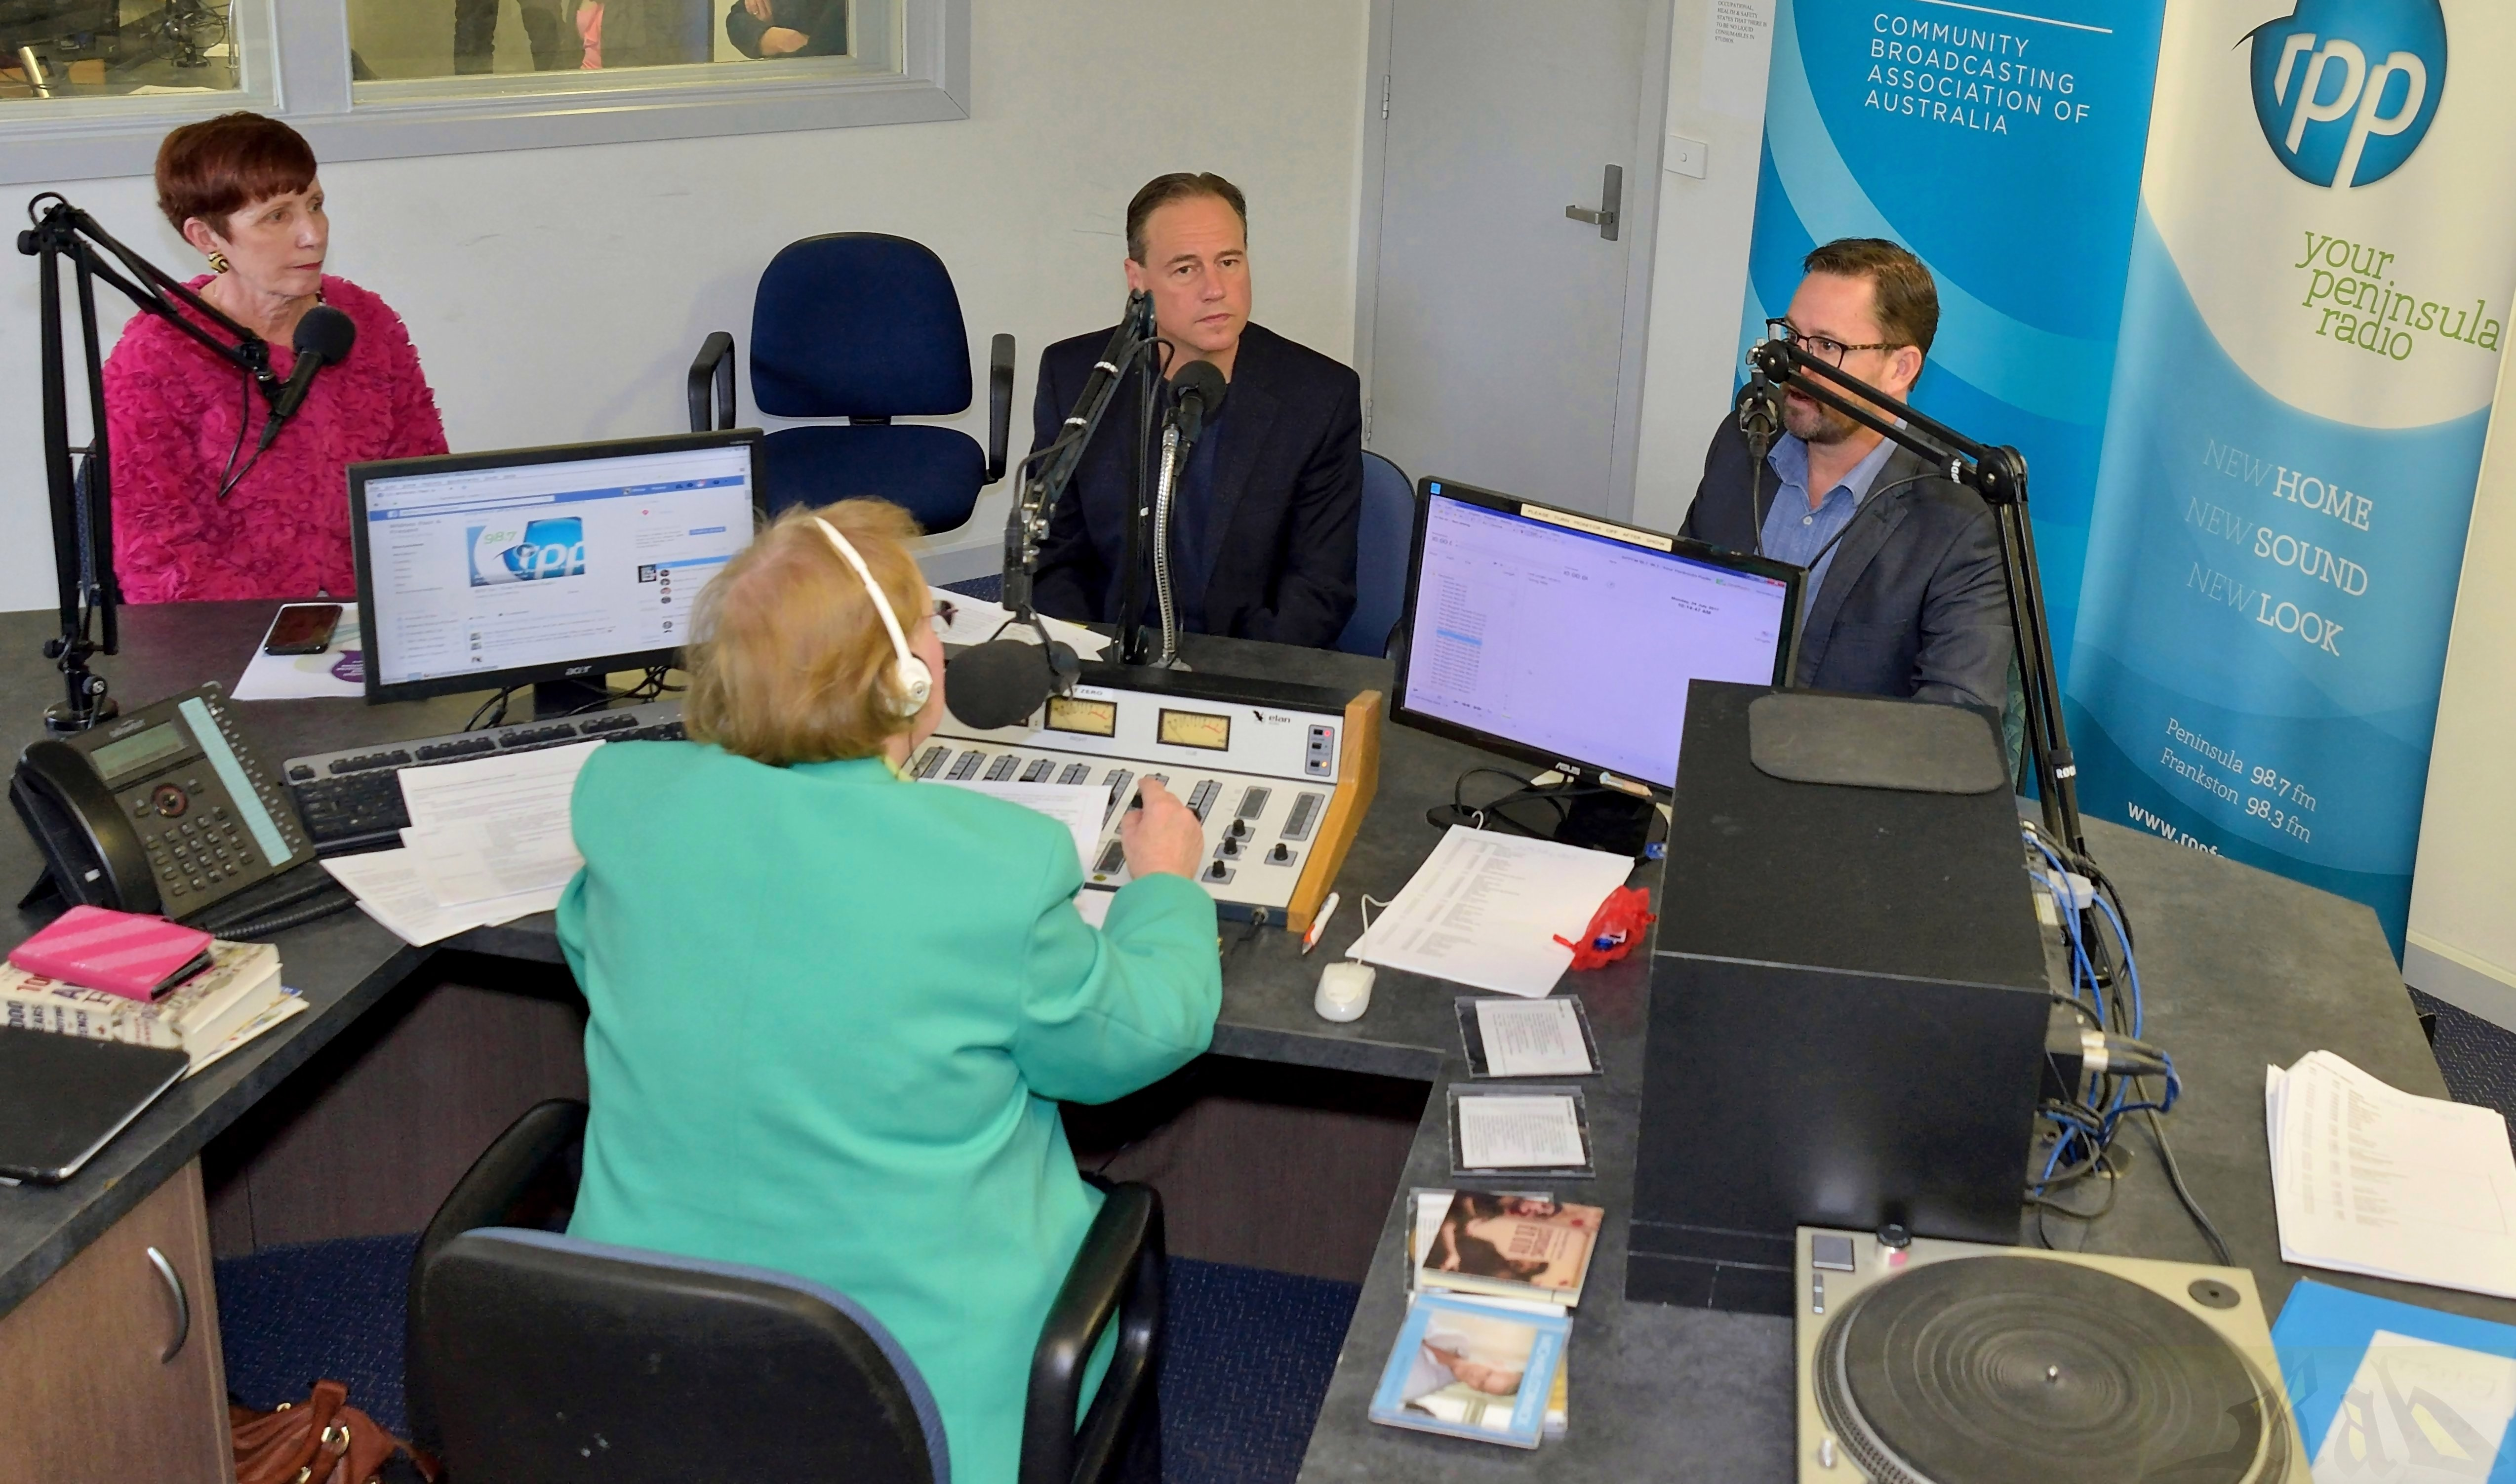 Launch of 2017 - 2019 Suicide Prevention Project at RPP FM